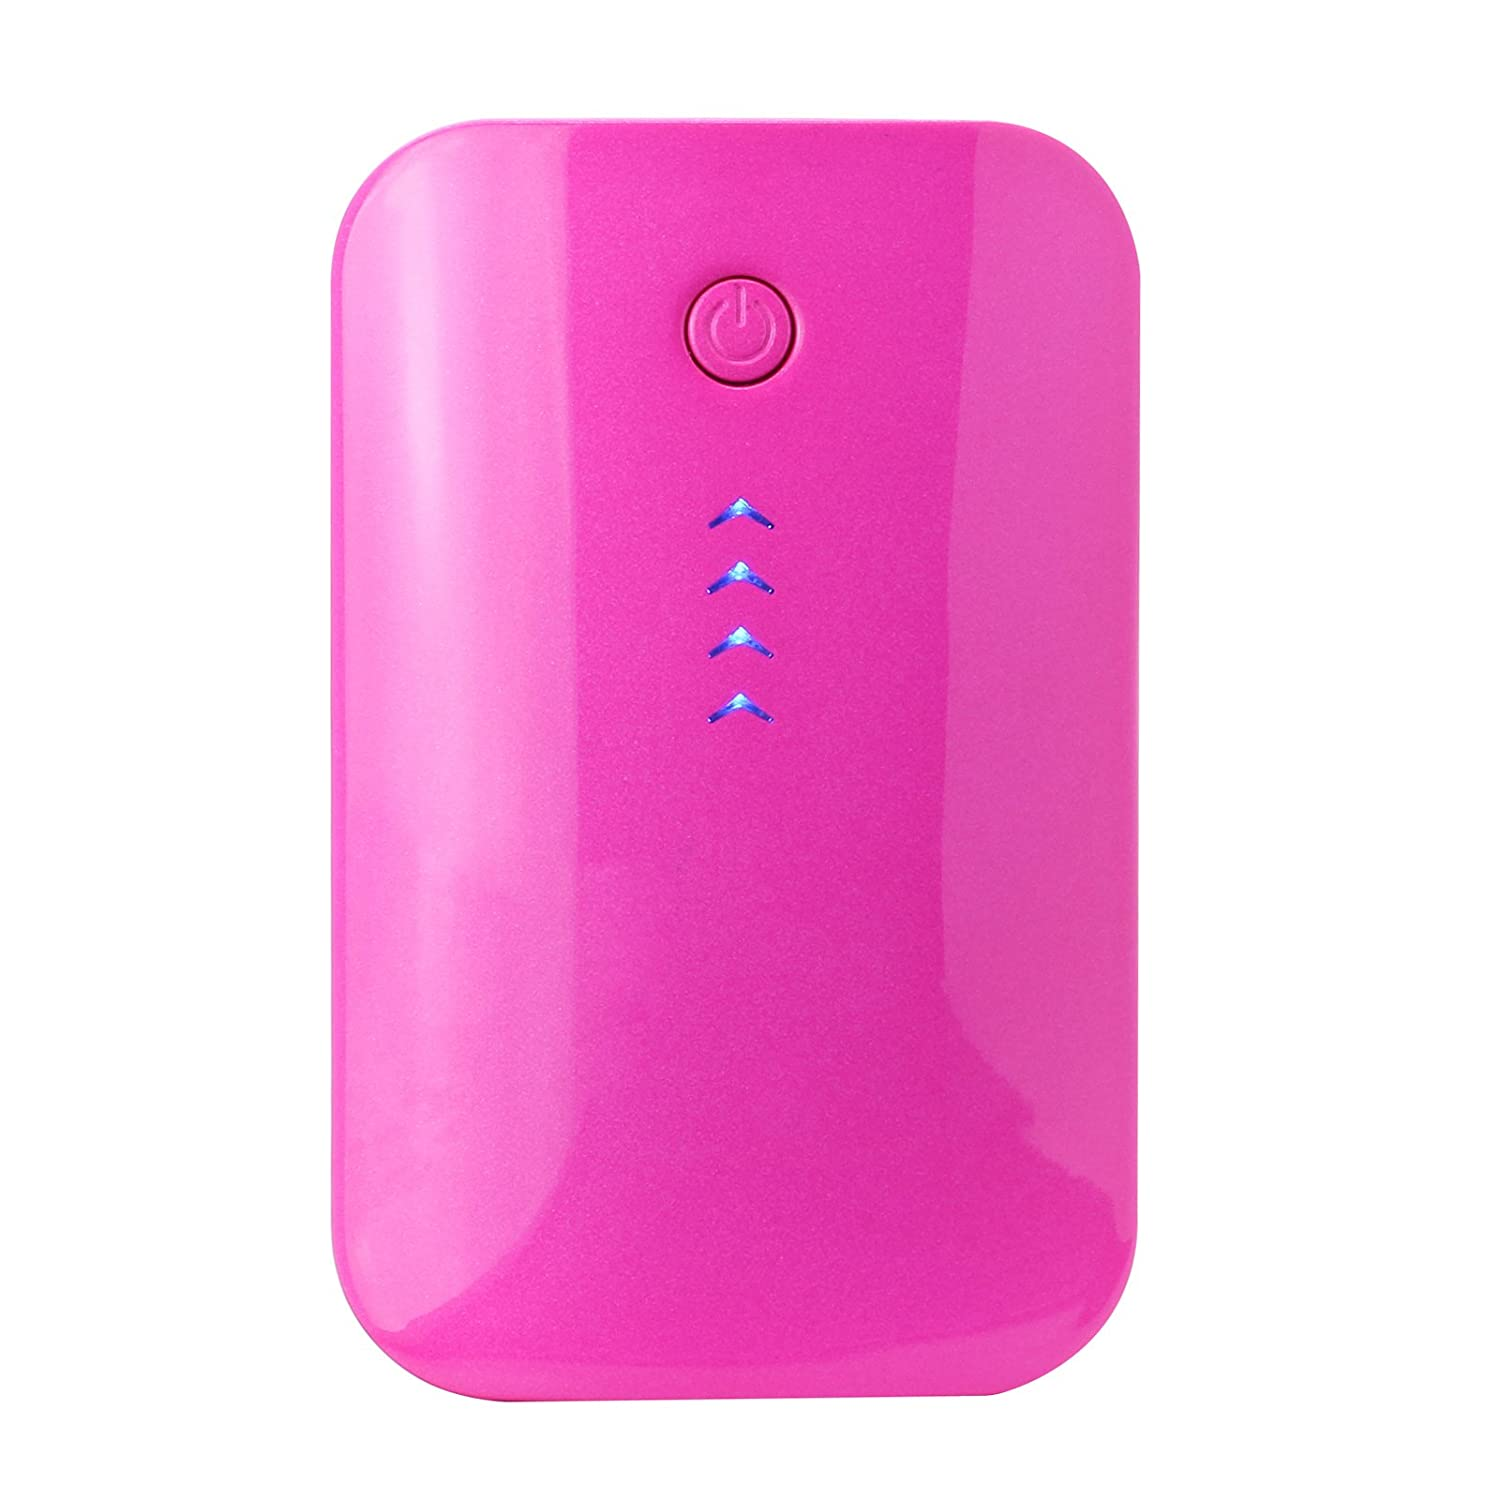 Good Time® Mini 2600mah External Battery Pack Compact Lipstick Size USB Universal Portable Power Bank Charger for Iphone 5 4s 4 3gs, Ipod, Samsung Galaxy S4 S3 Minii8190, S3 I9300, S Ii I9100, S I9000, Galaxy Nexus, Galaxy Note 2,blackberry,nokia and S